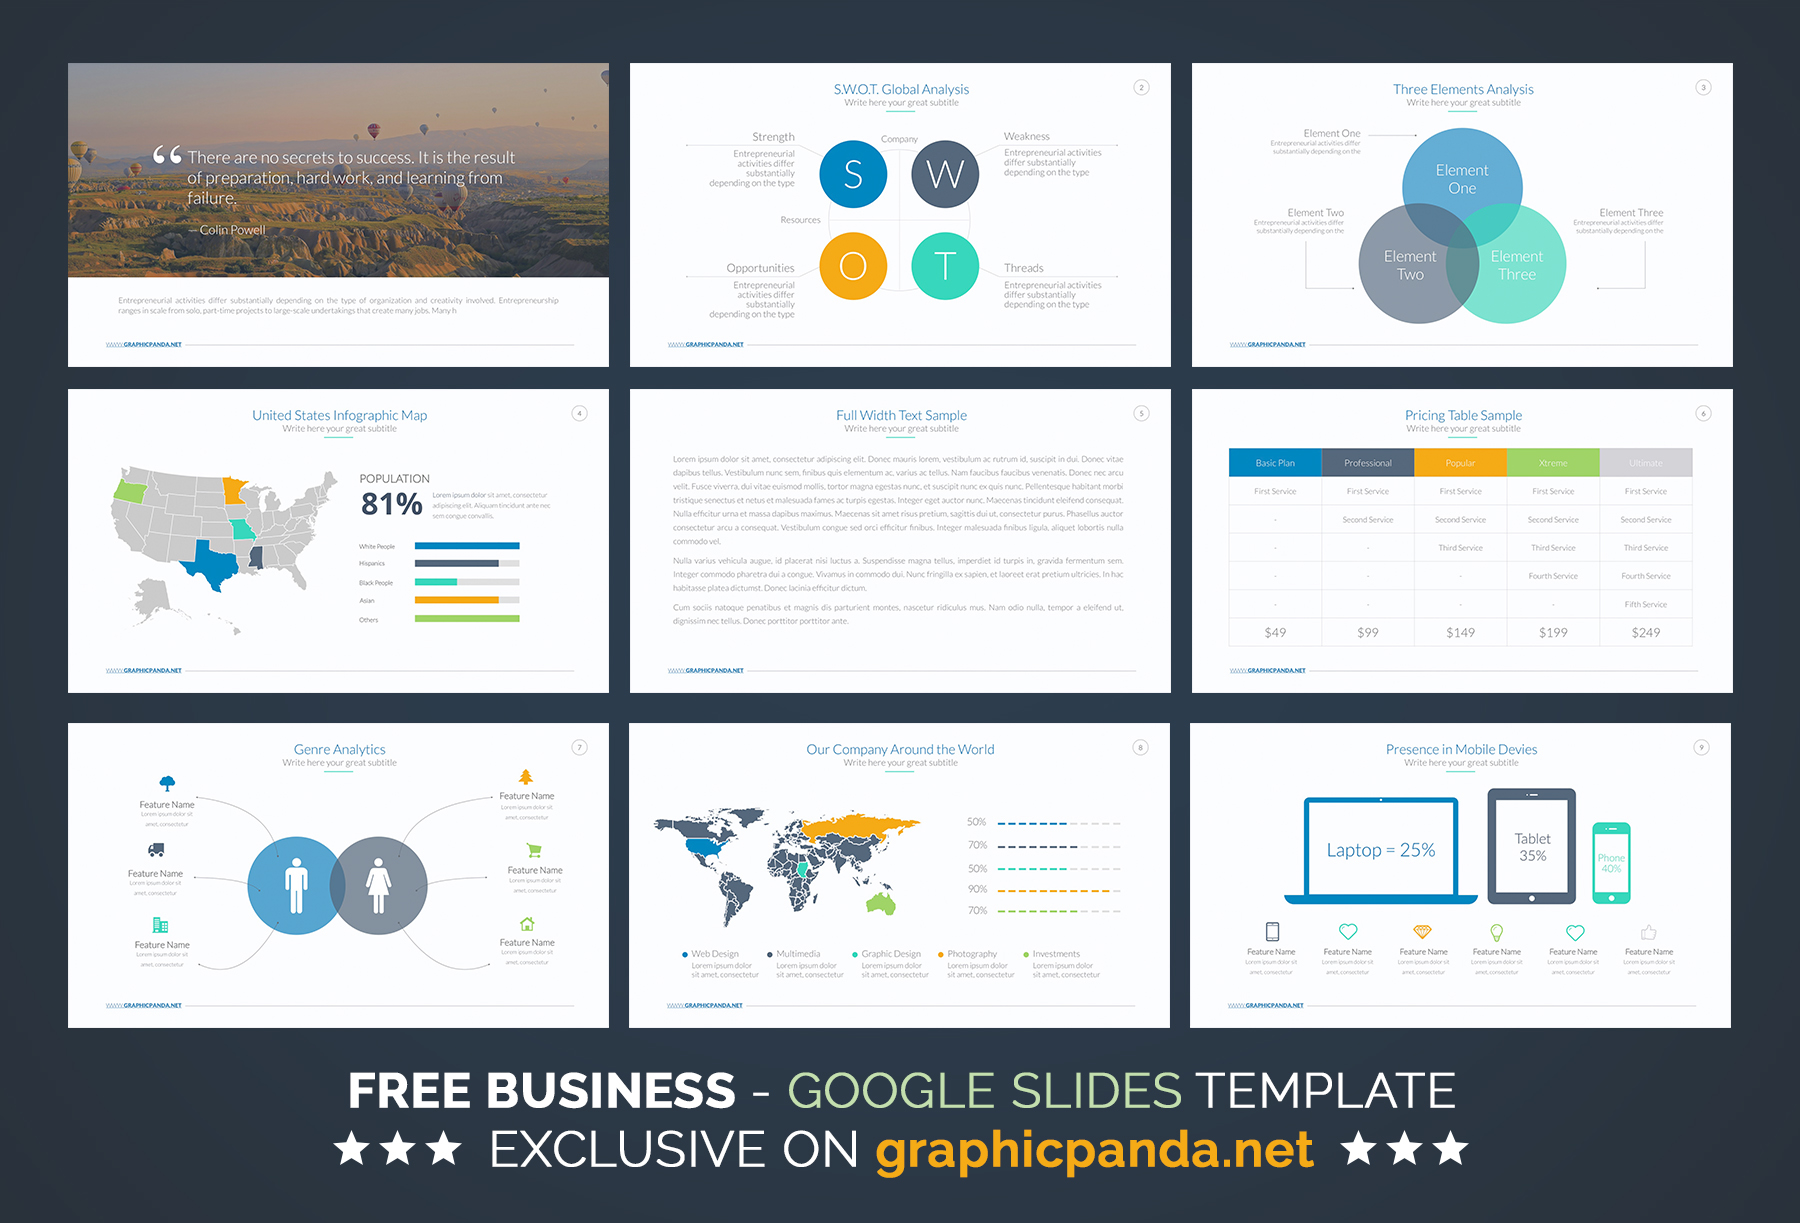 Free business plan google slides template on behance friedricerecipe